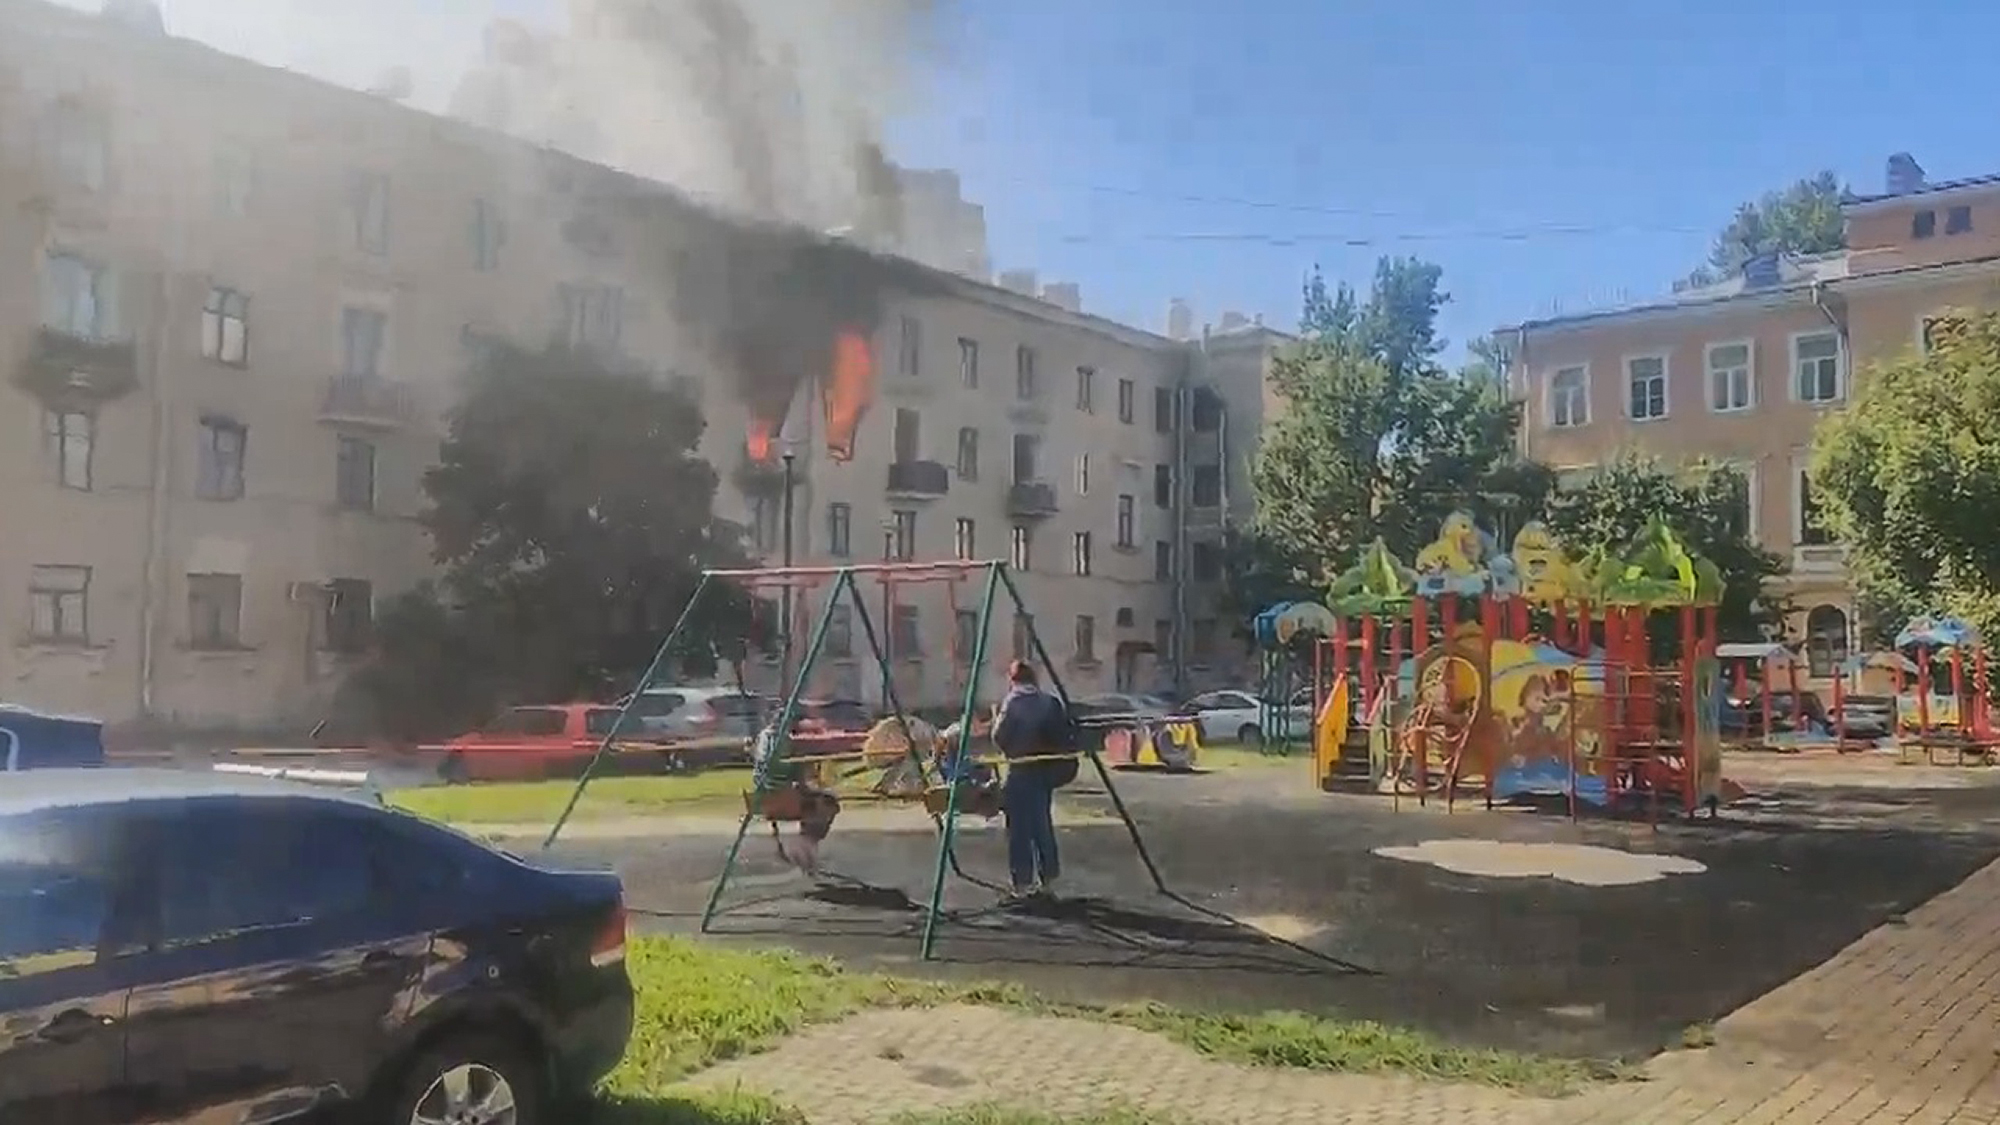 VIDEO: Keeping Their Cool: Boys Play On Swings As Apartment Fire Rages Just Yards Away